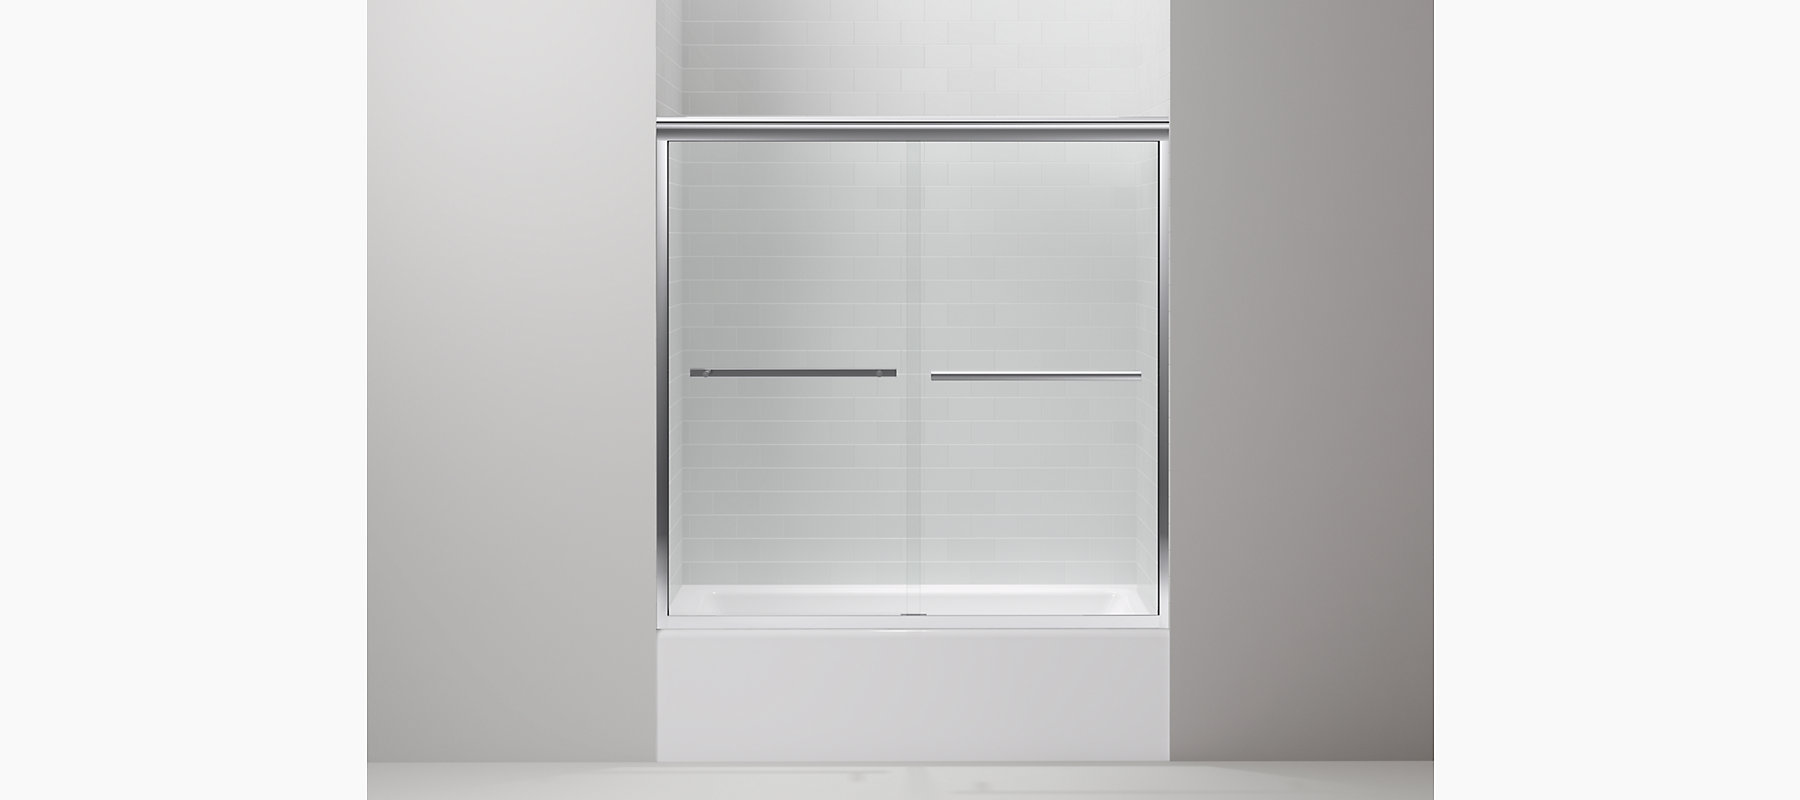 Gradient frameless sliding bath door k r709062 l kohler discontinued vtopaller Gallery